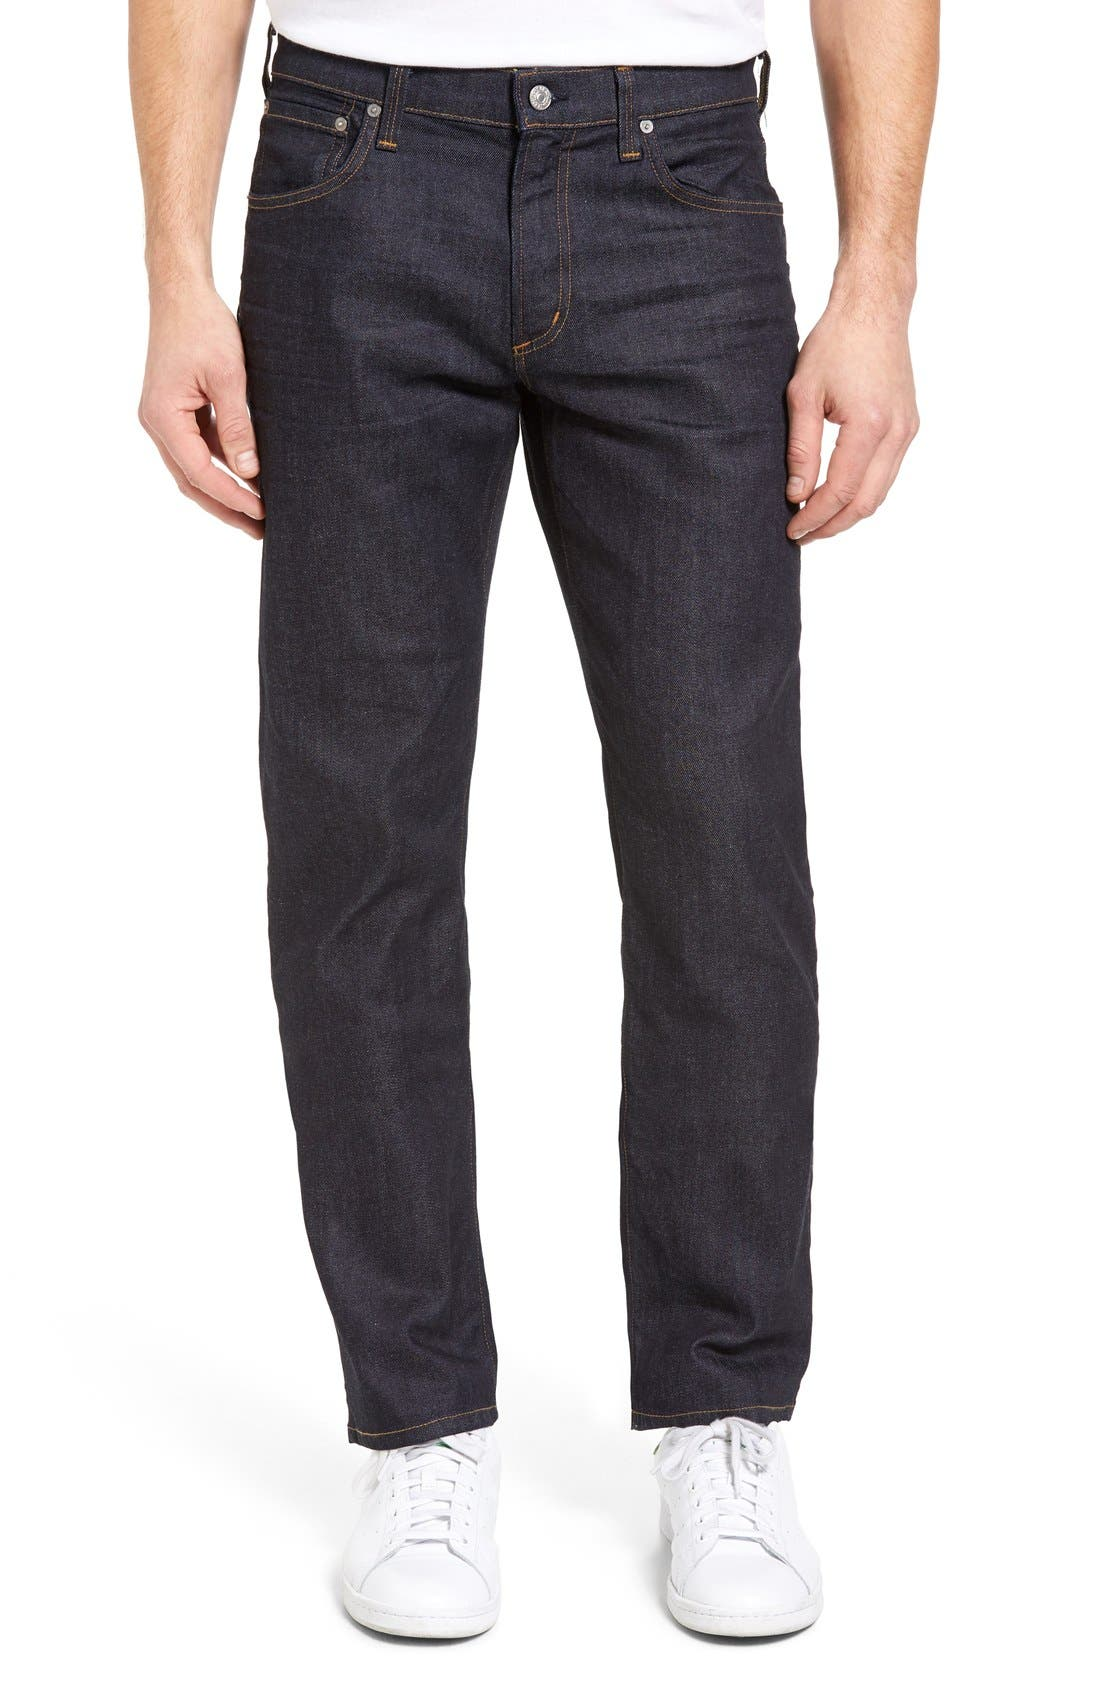 Sid Classic Straight Leg Jeans,                             Alternate thumbnail 11, color,                             LAFAYETTE